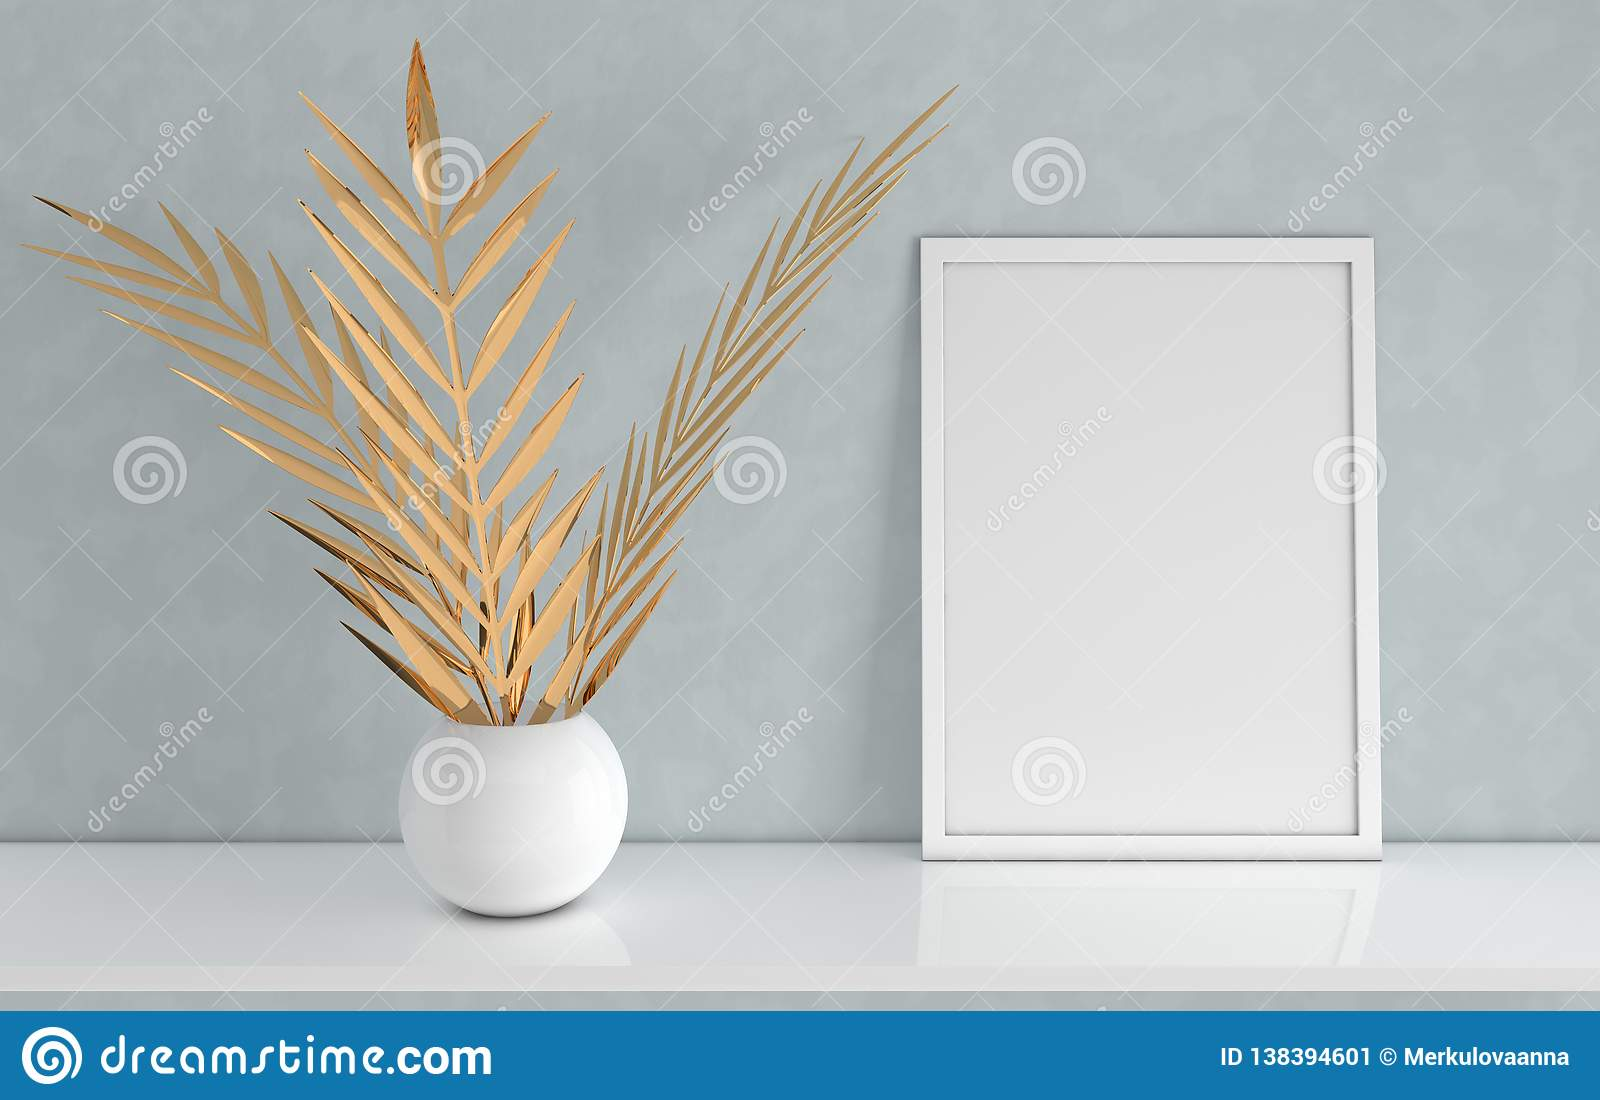 Poster frame mockup with gold palm leaves in the vase on grey background. Front view photo frame on white book shelf or desk.